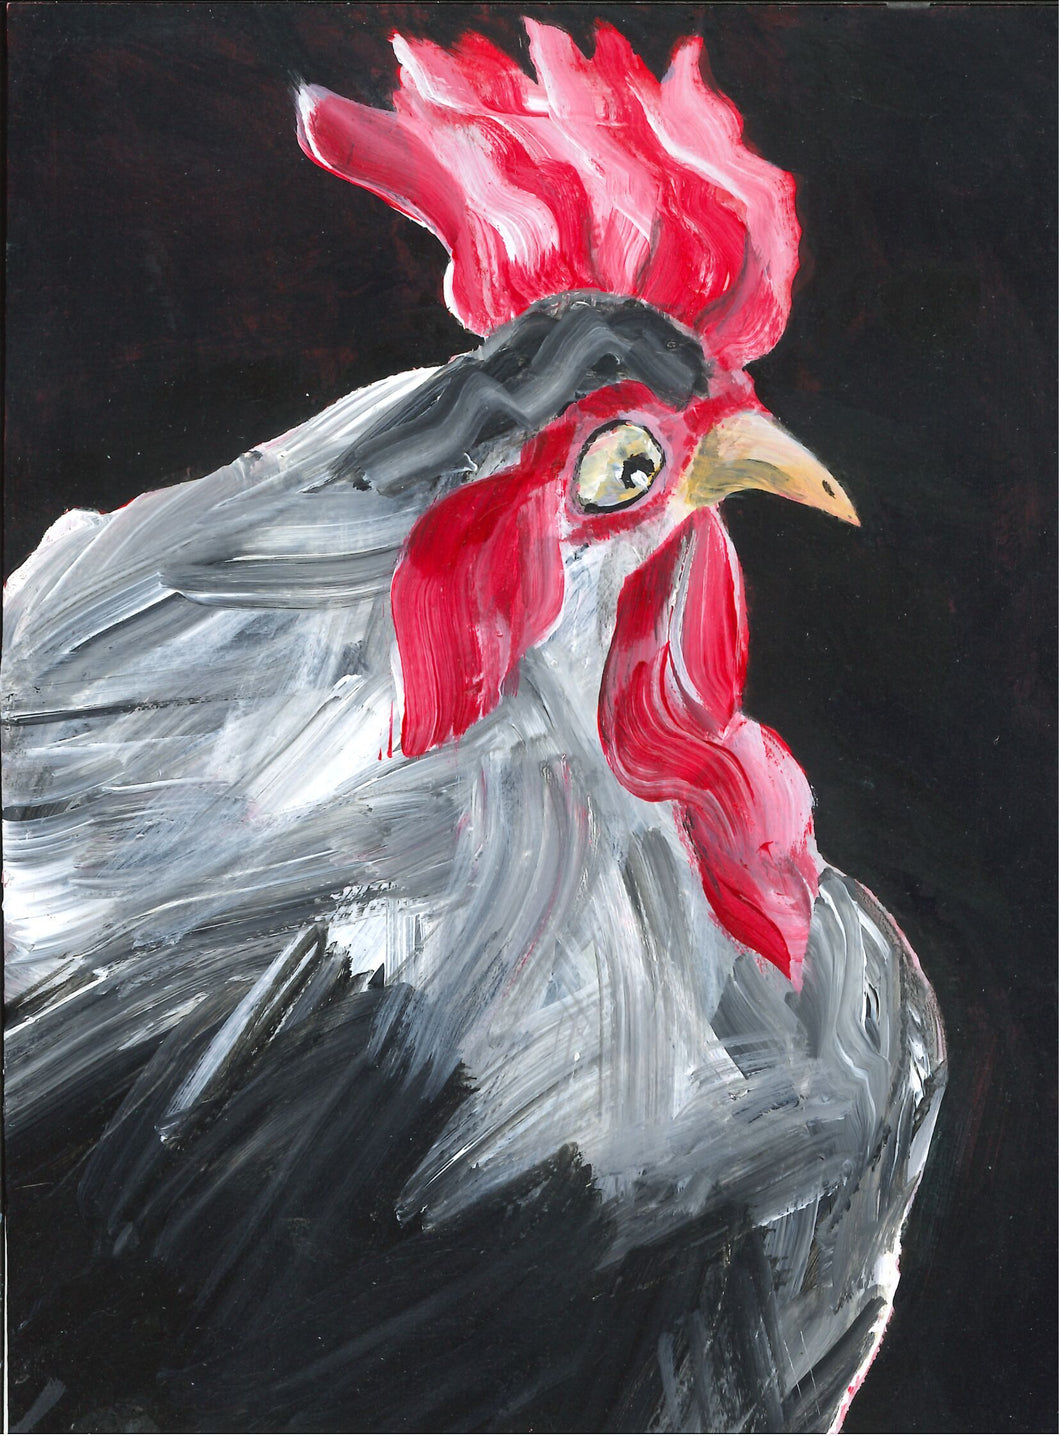 252, Onny Thomson, Henpecked, 2020, Acrylic on watercolour paper 190x140mm